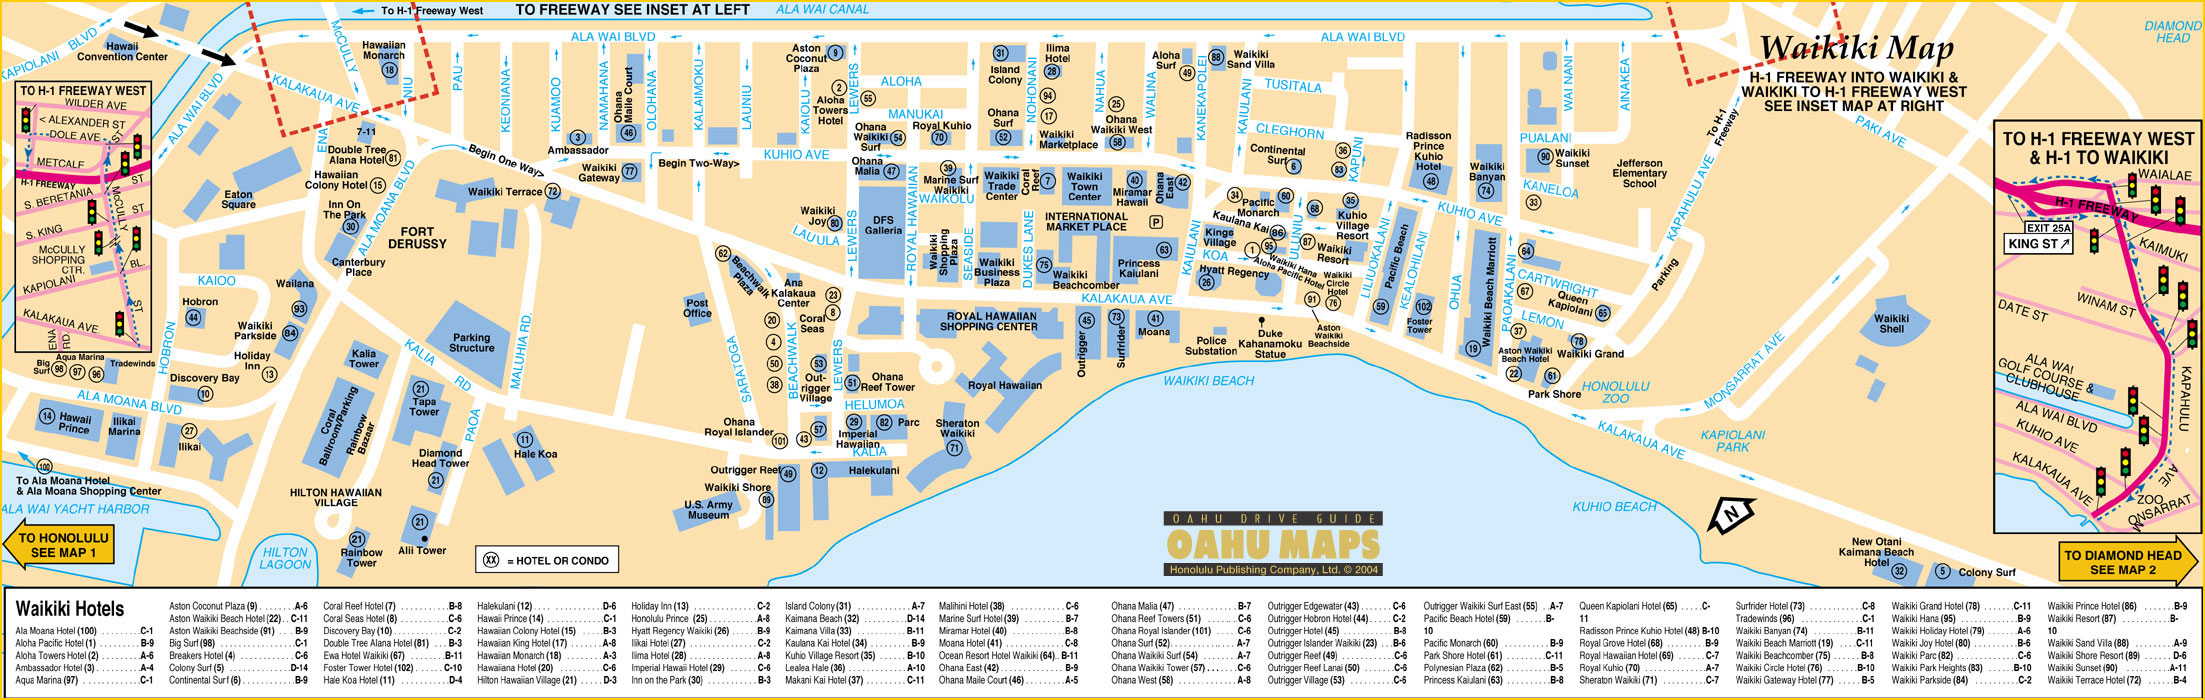 Waikiki Tourist Map Waikiki Honolulu Hawaii mappery – Tourist Map Of Oahu